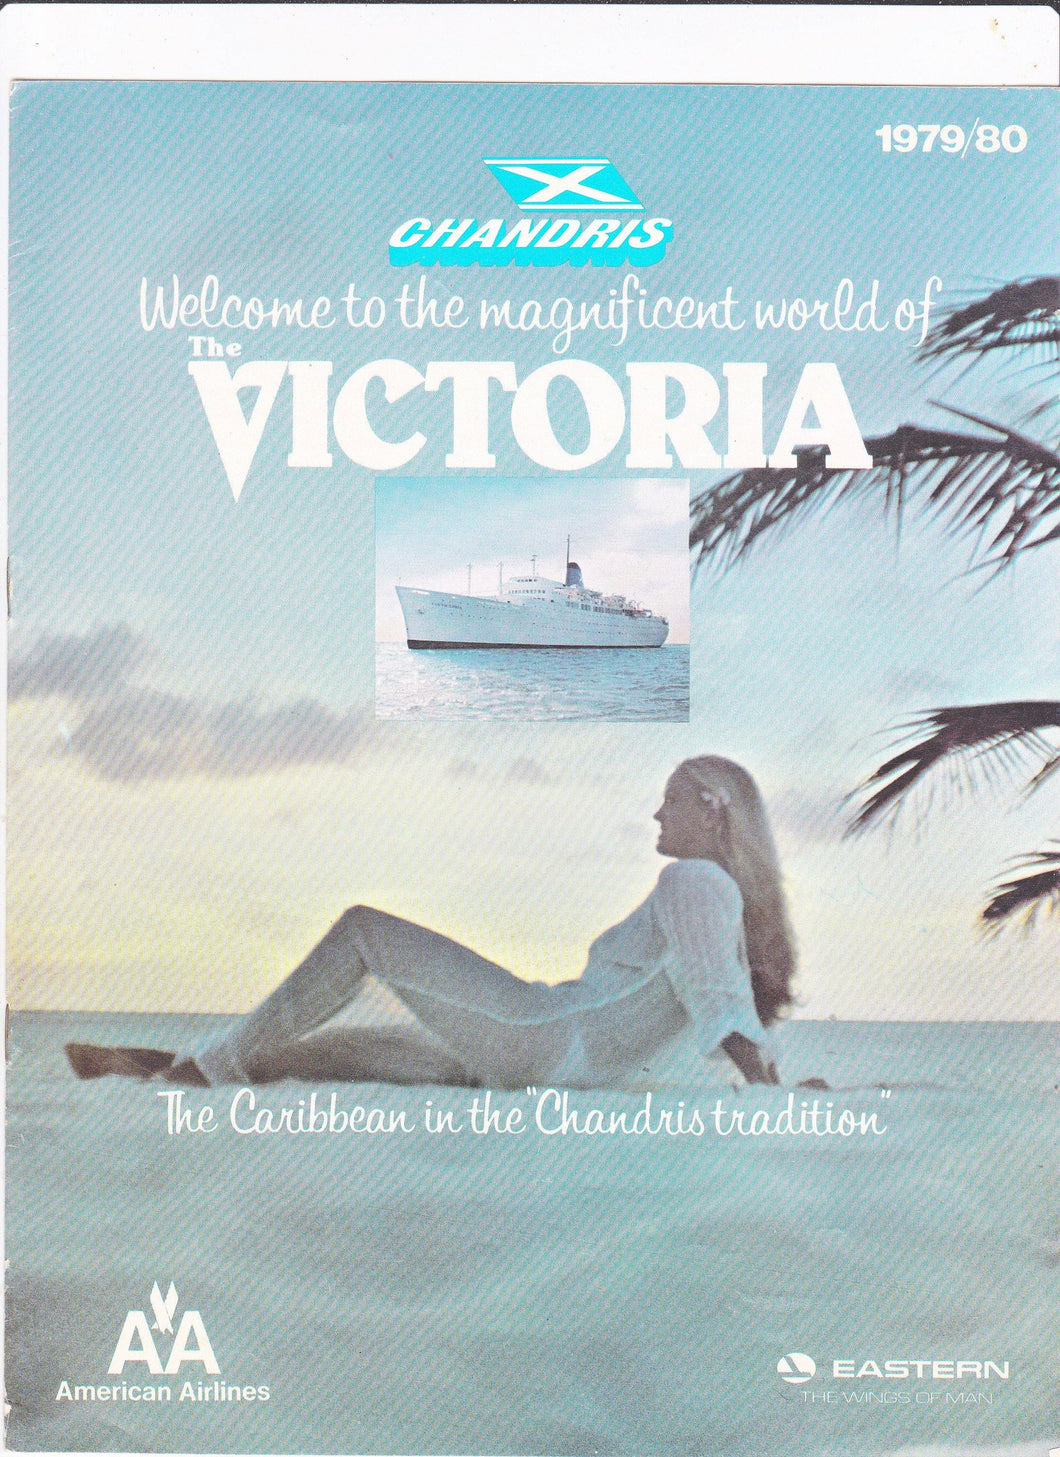 Chandris Cruises The Victoria 1979/80 Caribbean Cruises Brochure